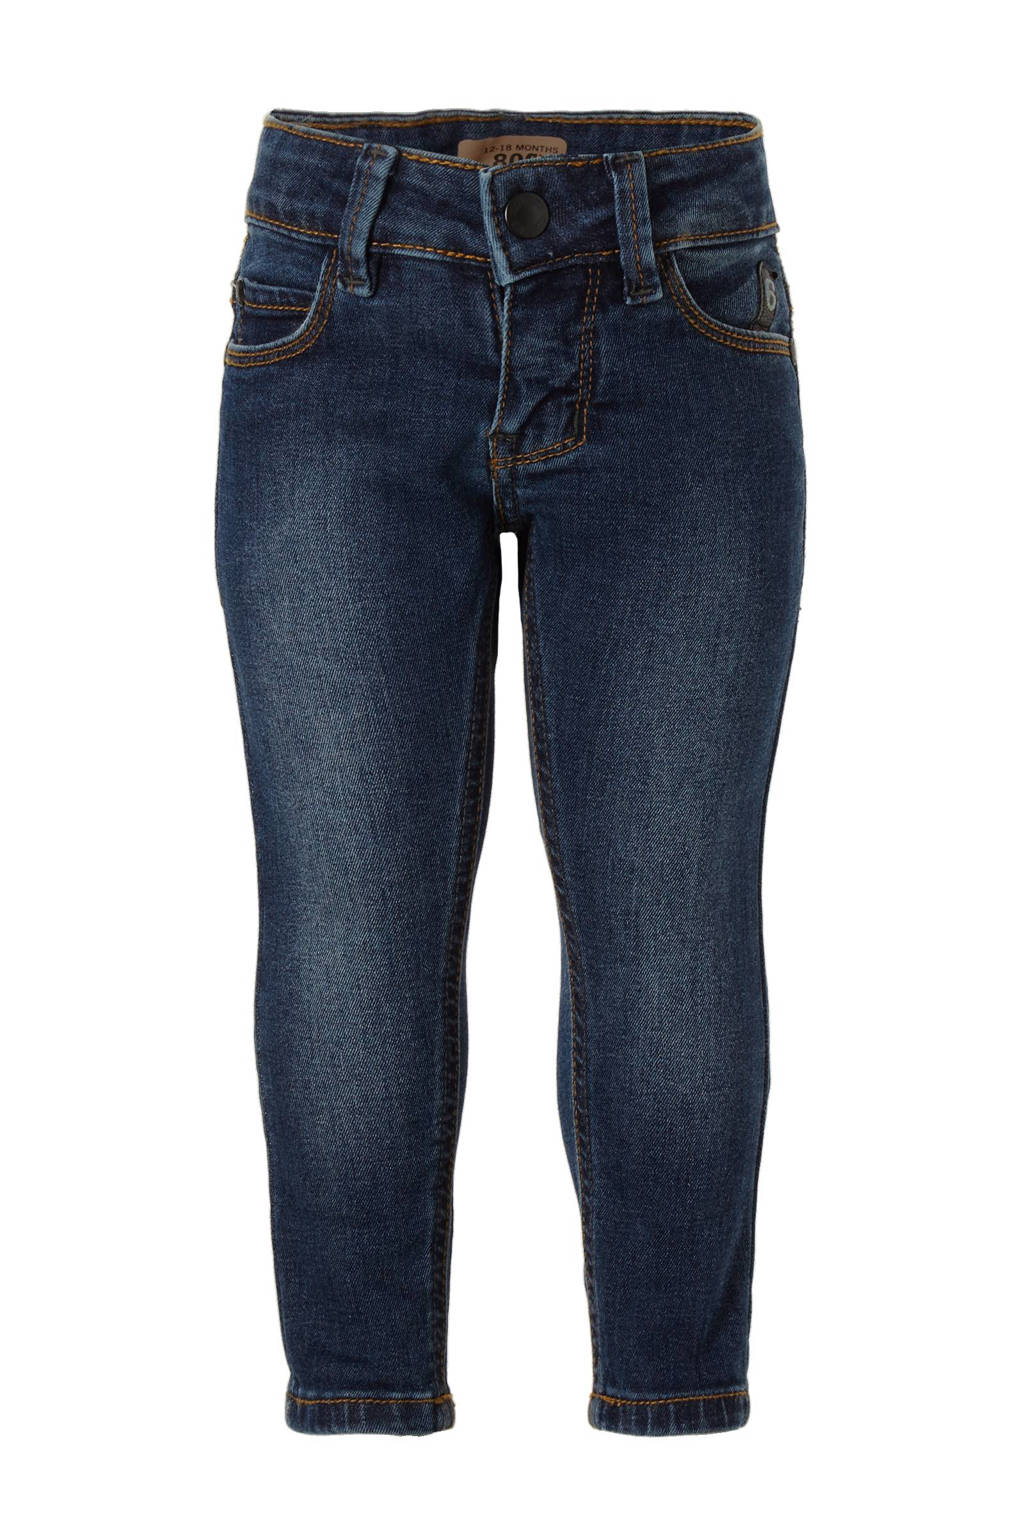 IMPS&ELFS baby tapered fit jeans, Stone used blue